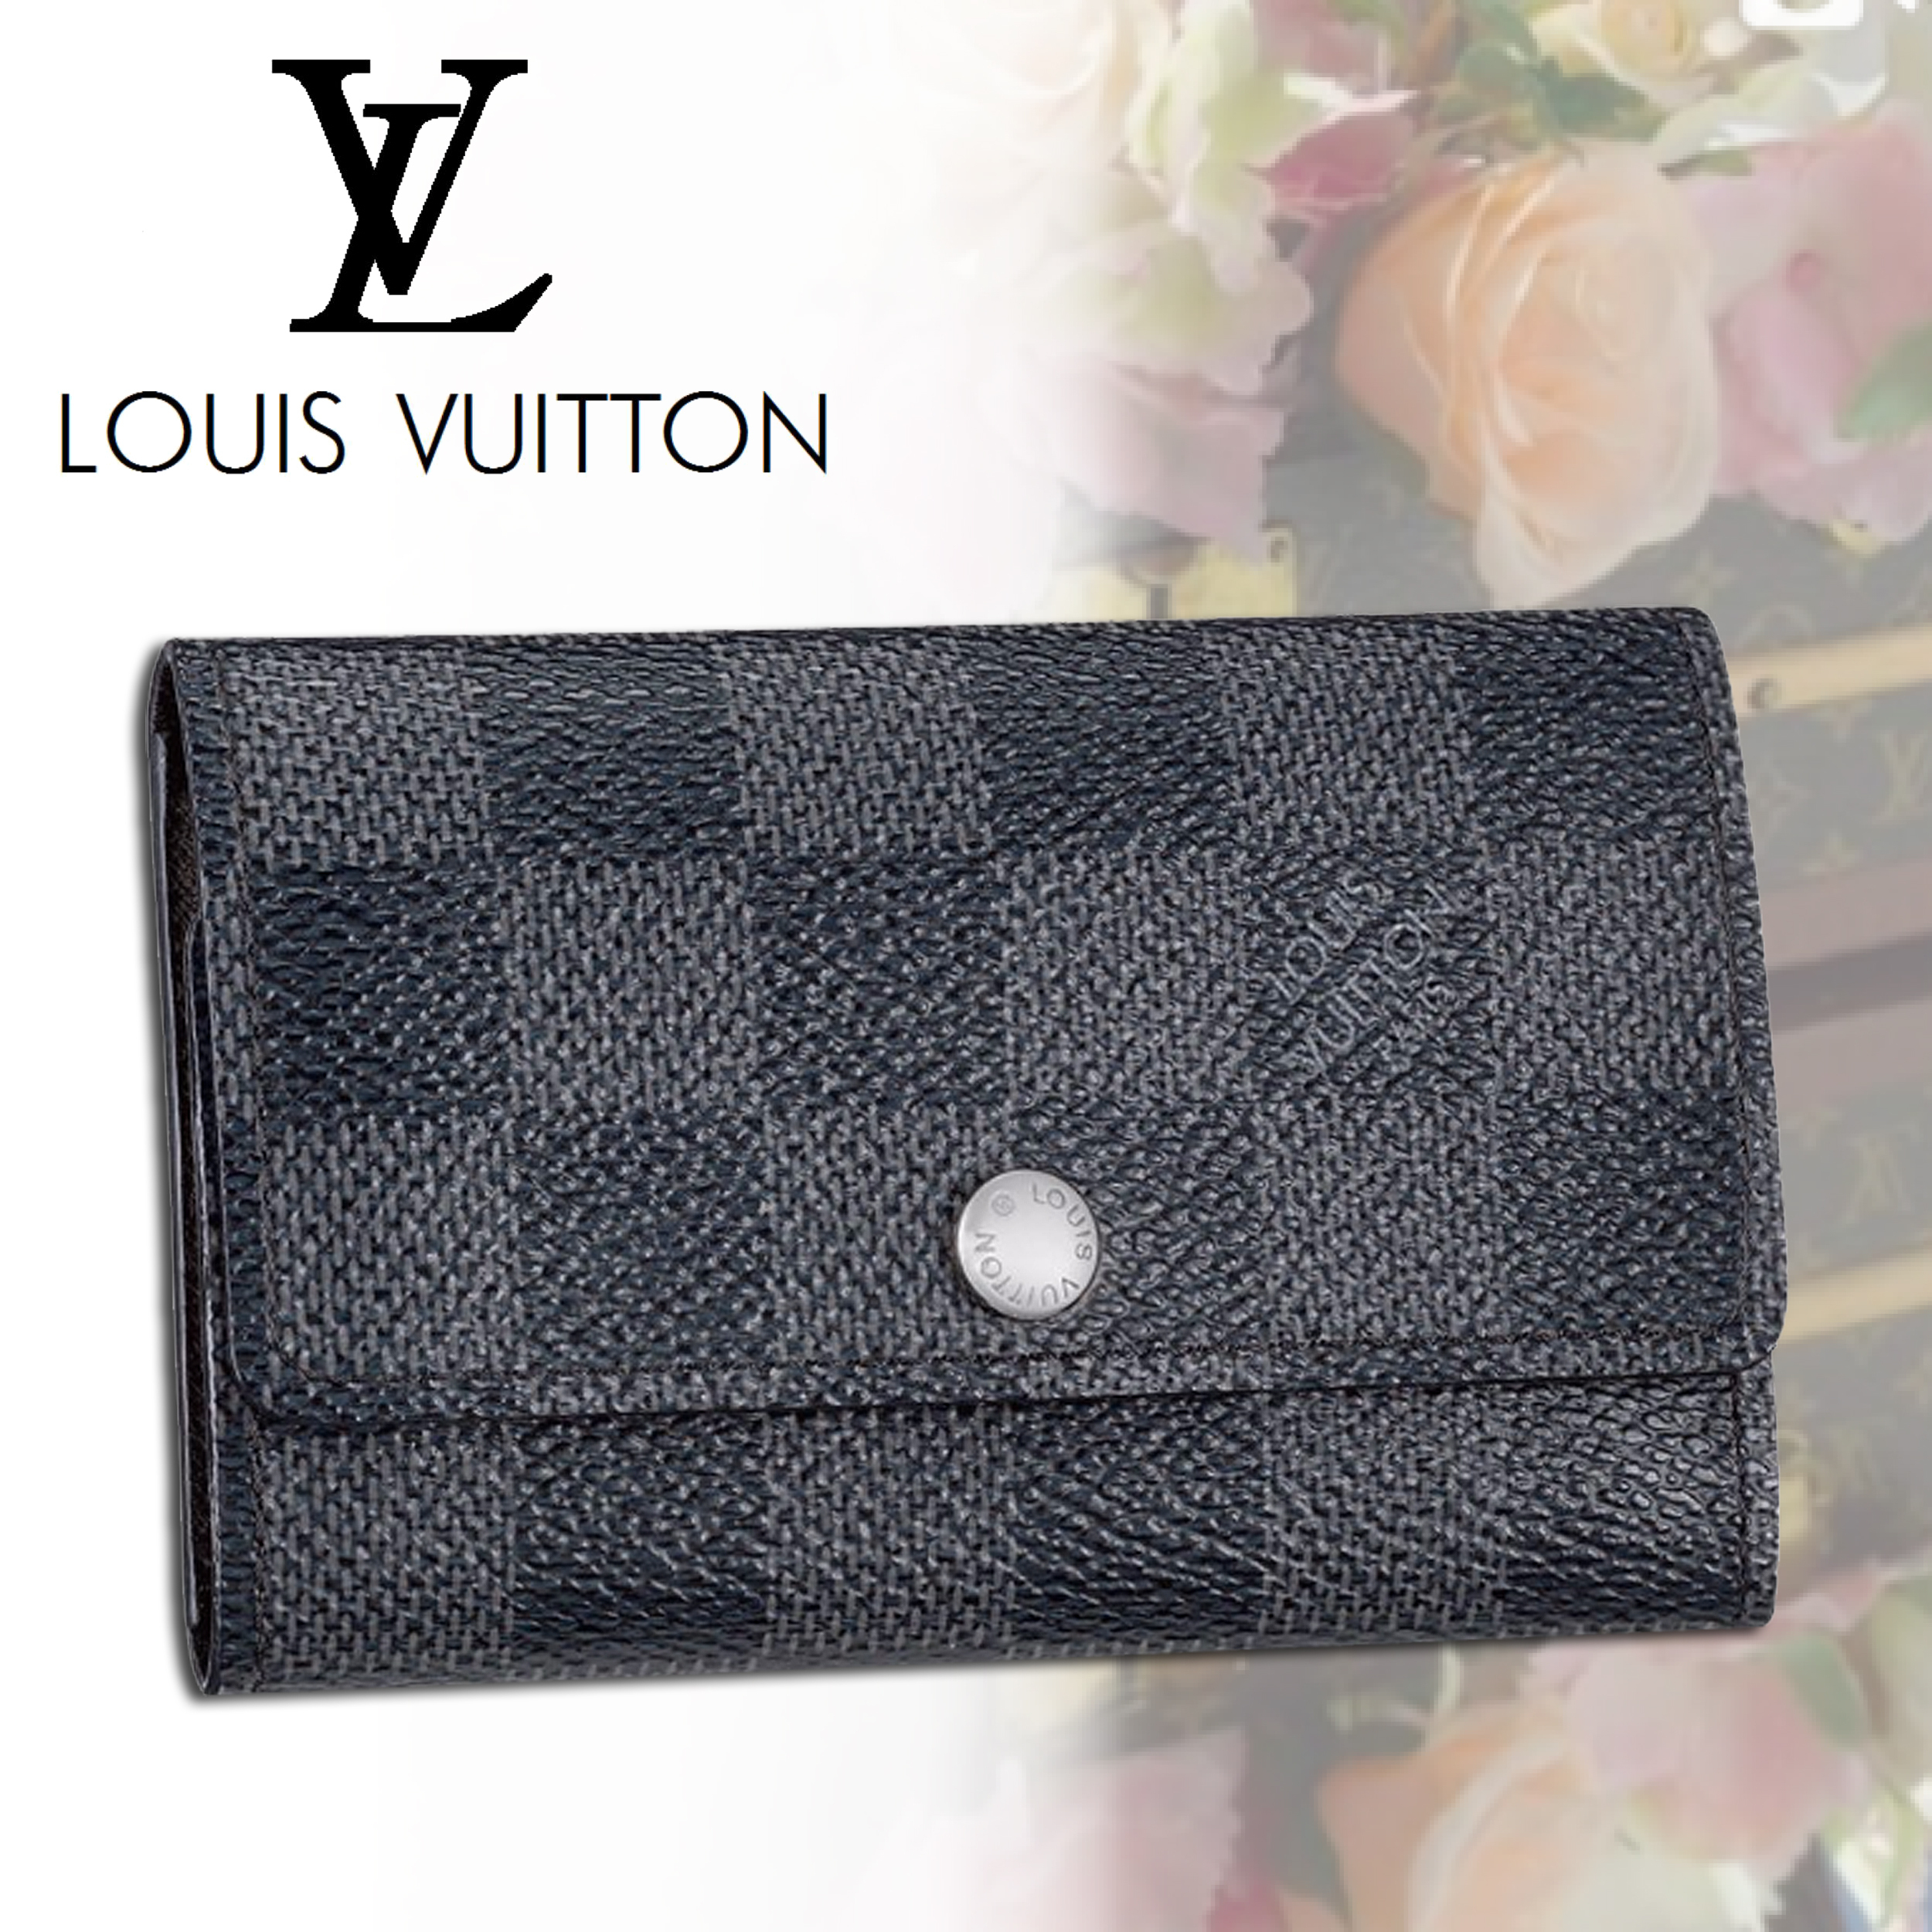 Louis Vuitton ルイヴィトン ダミエ キーケース 国内発送 黒